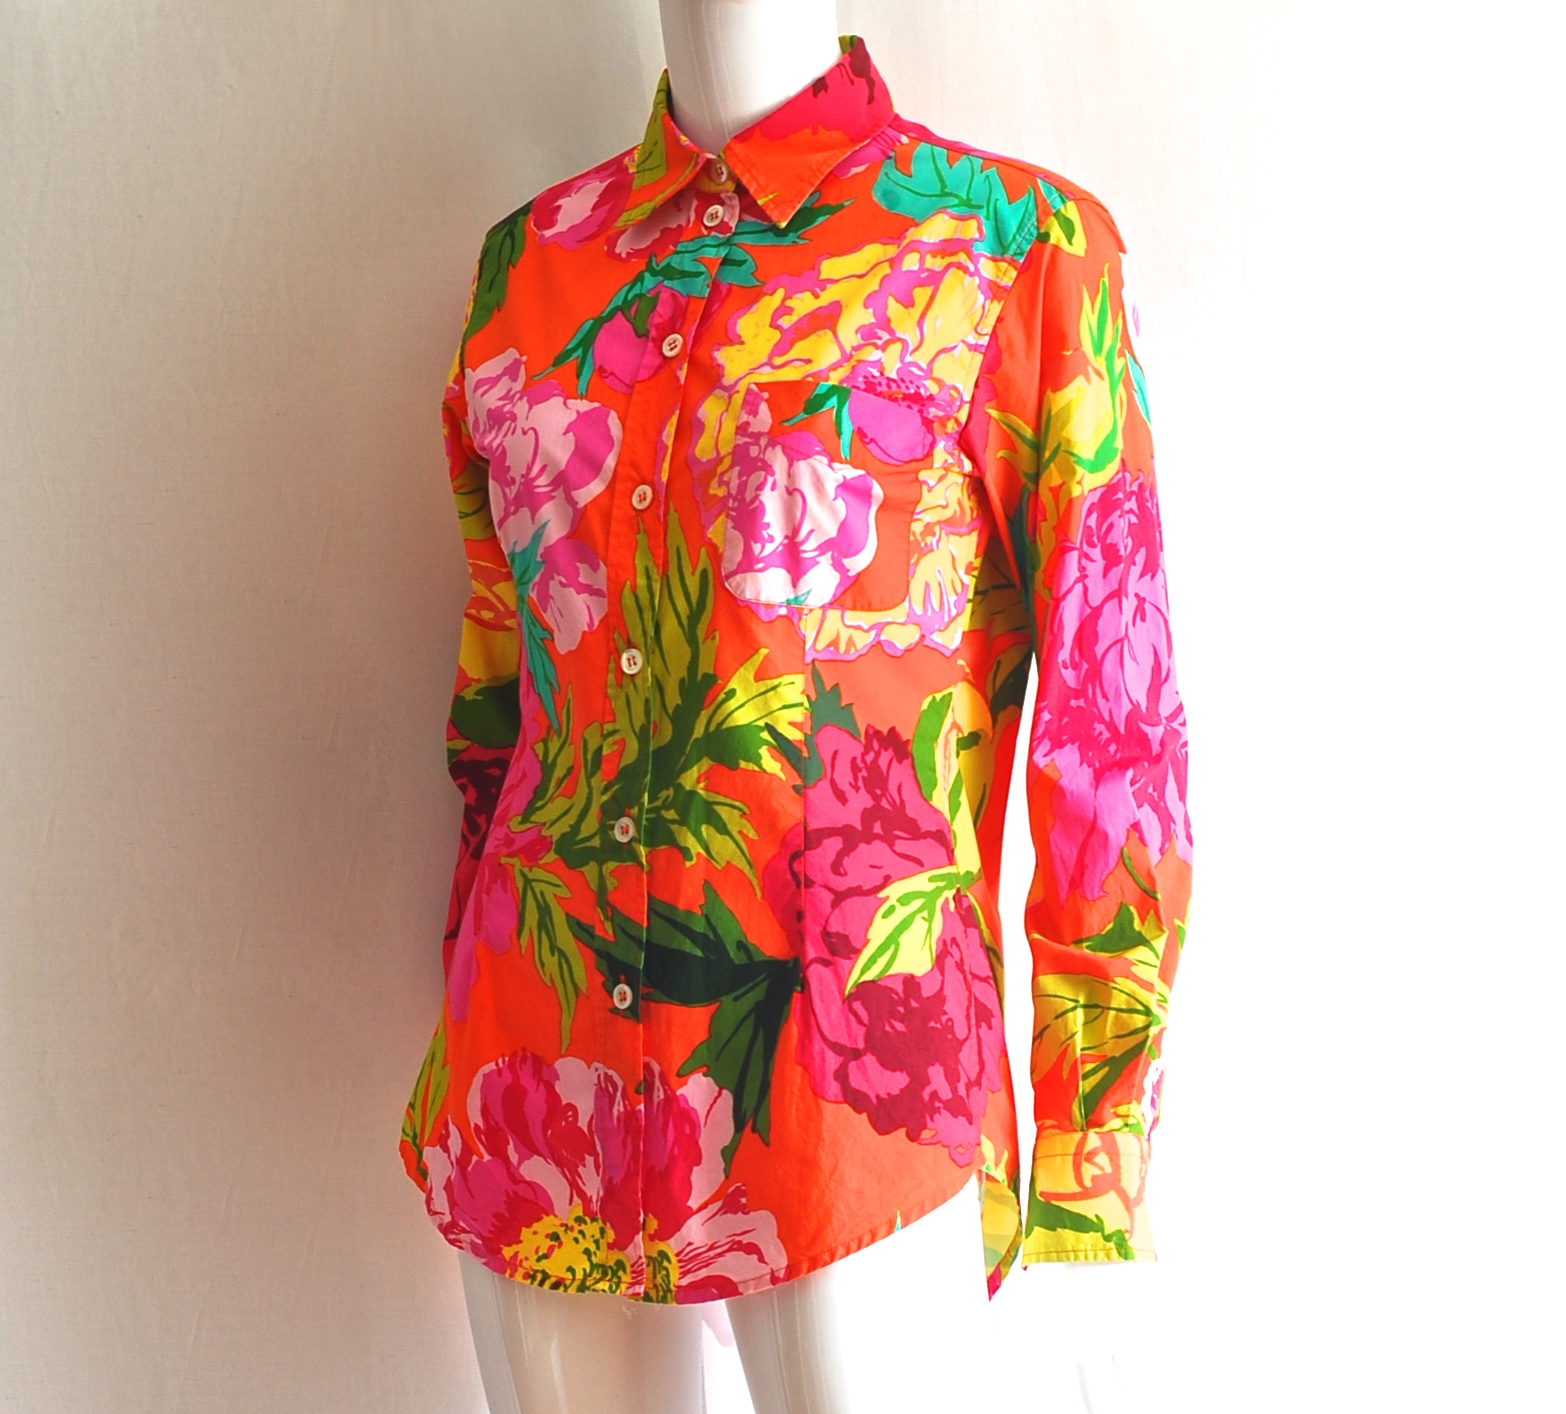 a01be0a6be0 Moschino Couture Floral Print Long Sleeve Cotton Blouse – Italy ...